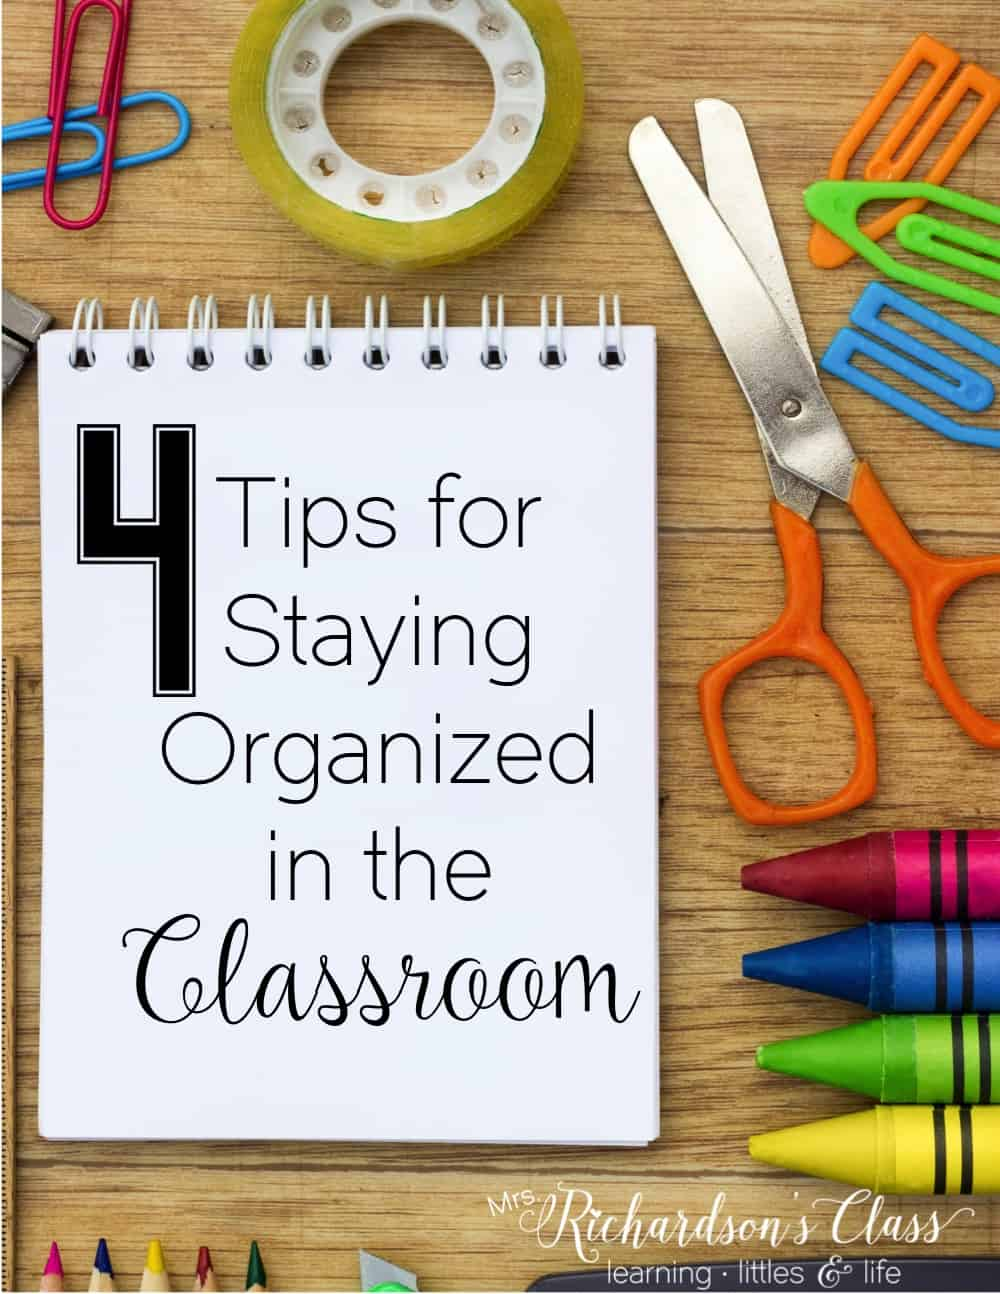 Do you struggle to stay organized in the classroom? These 4 tips are sure to help you keep your classroom organized! Number 1 is the key! #ClassroomOrganization #ClassroomIdeas